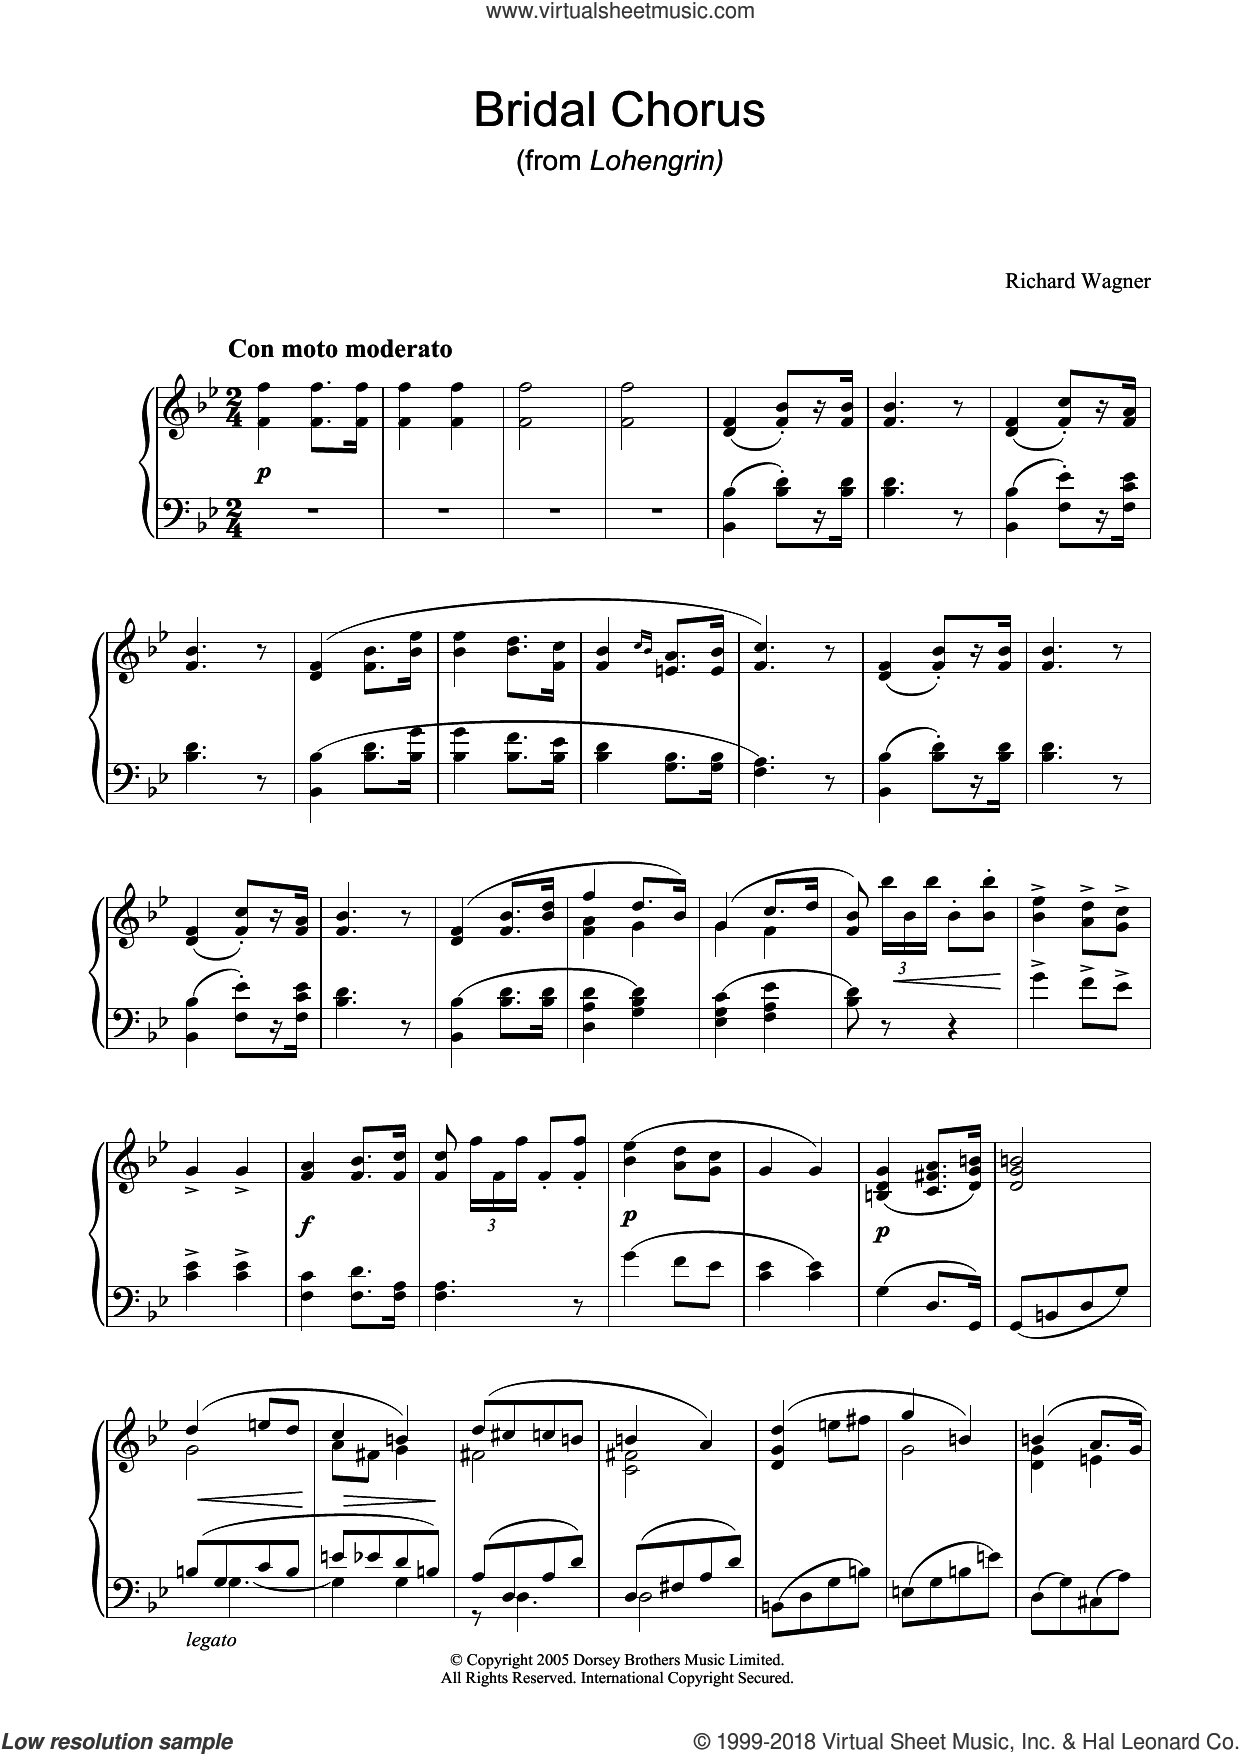 Bridal Chorus (from Lohengrin) sheet music for piano solo by Richard Wagner, classical wedding score, intermediate skill level